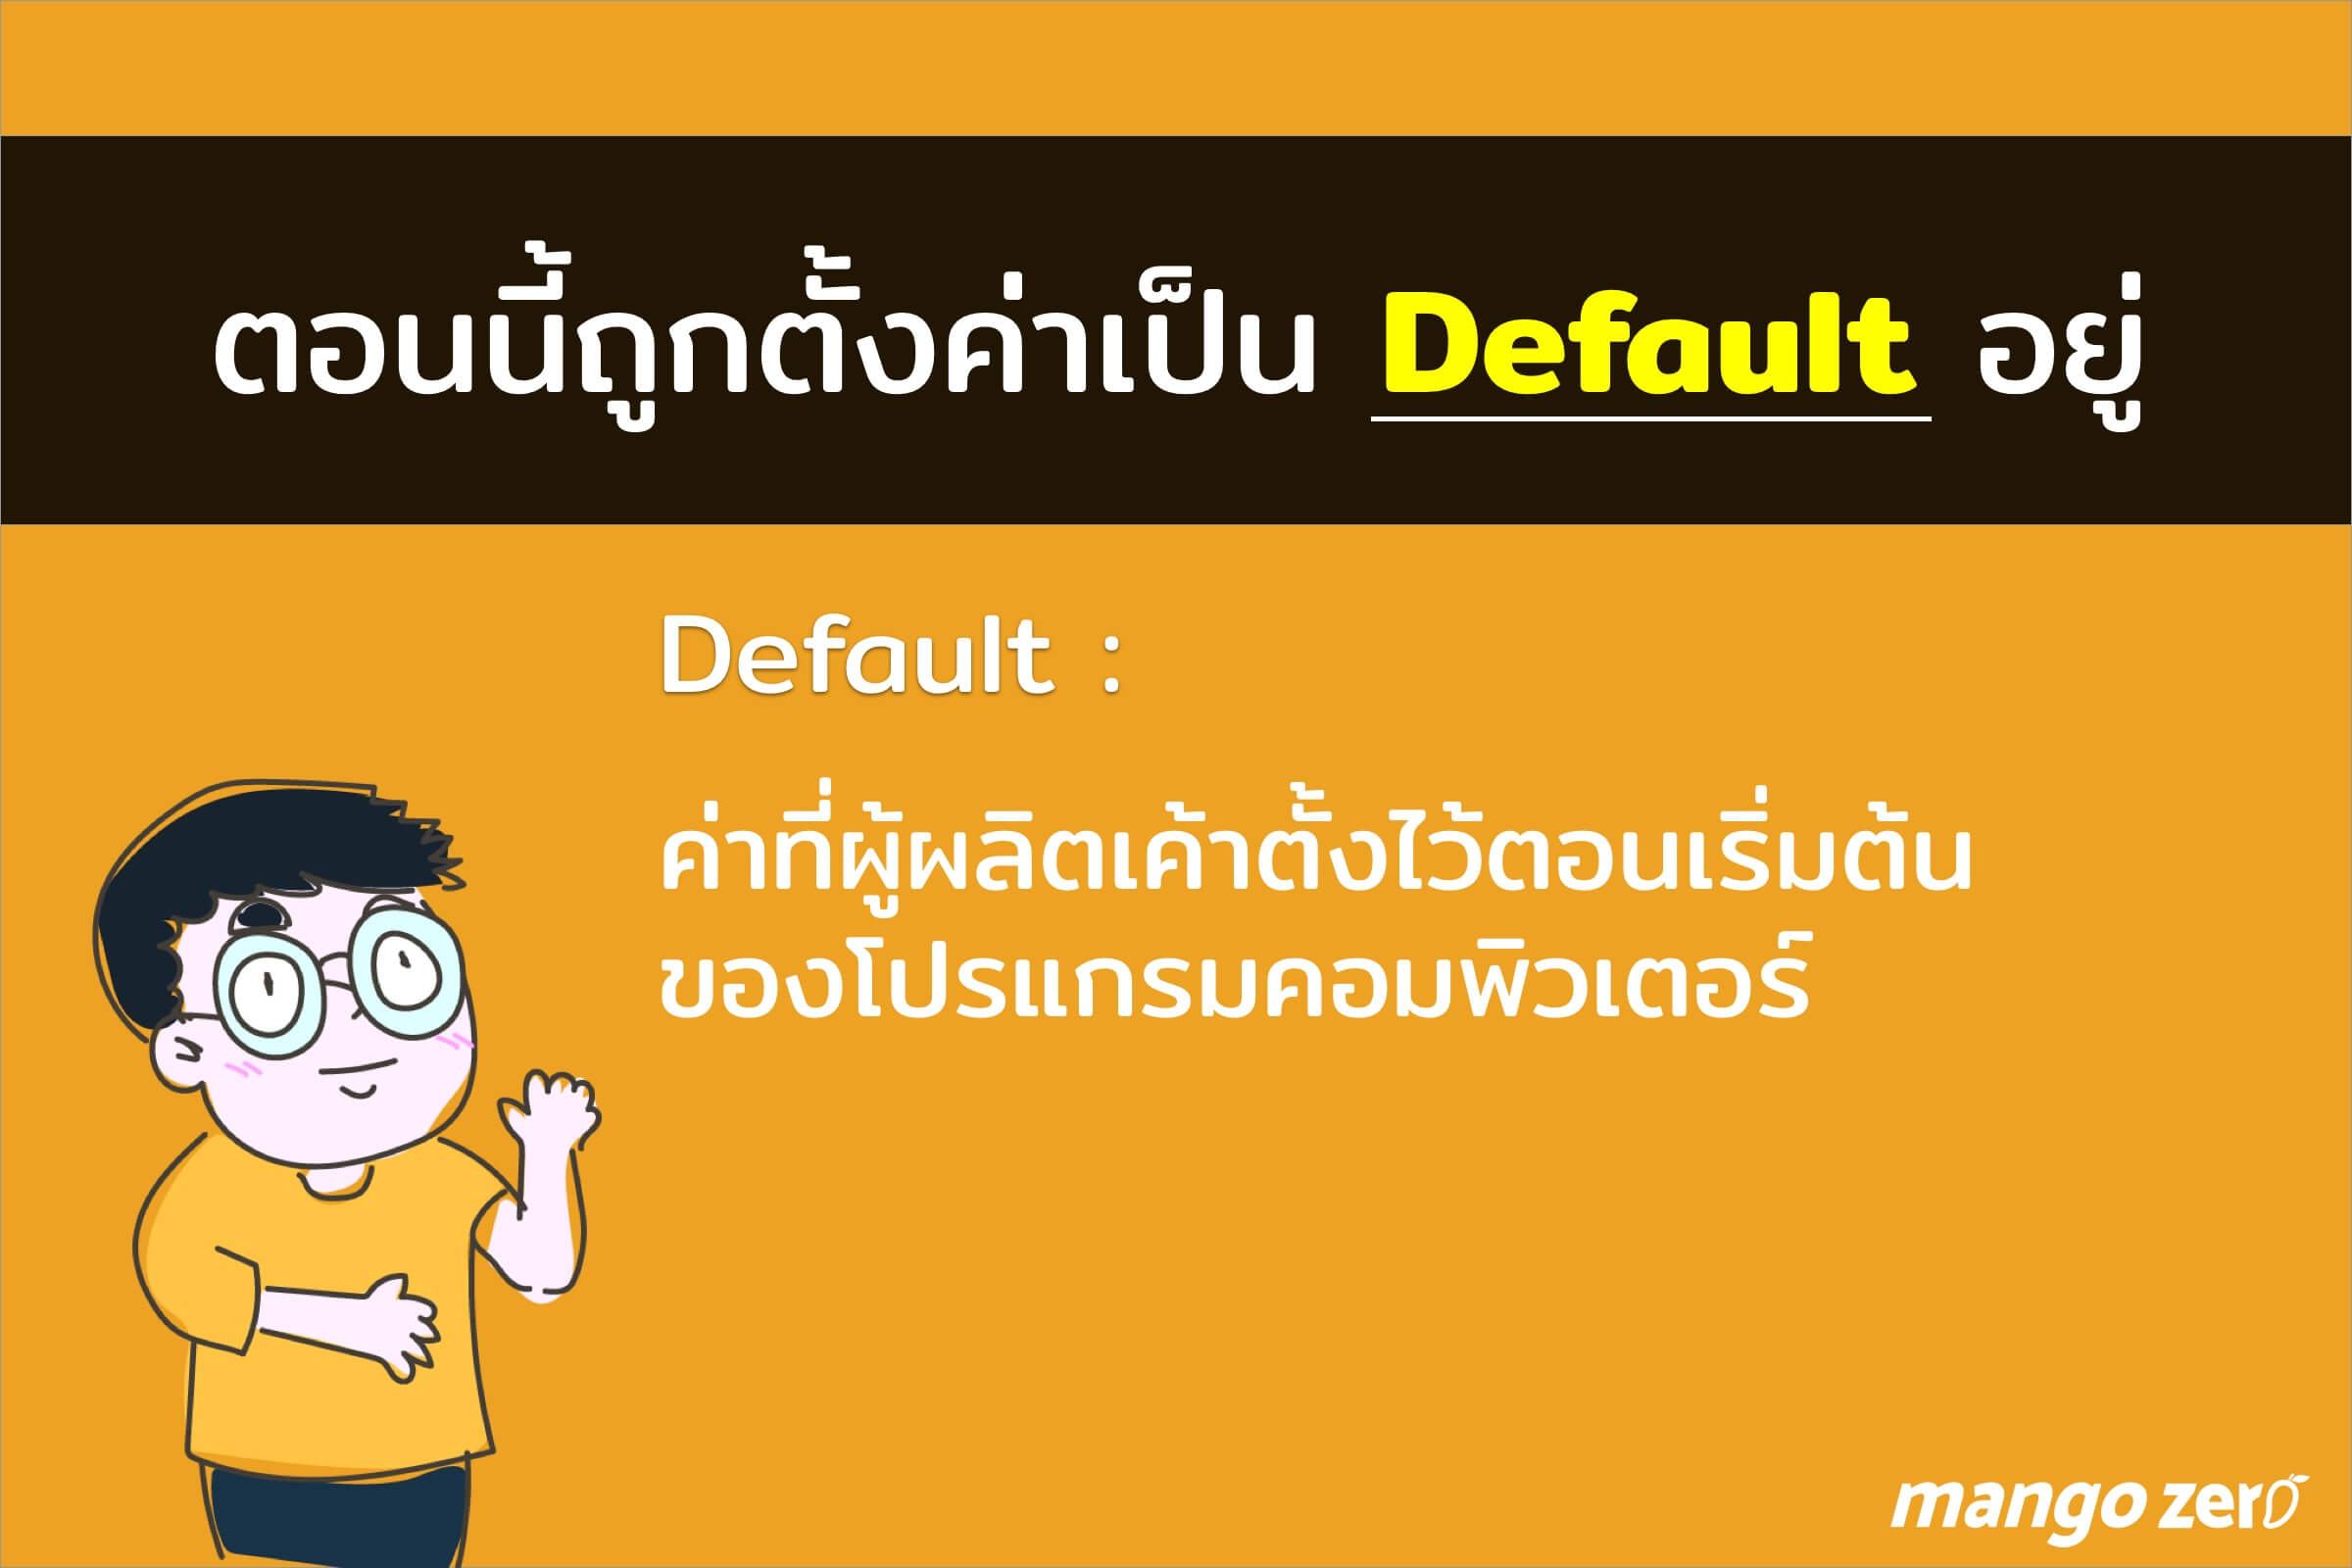 thai-it-dictionary-part-1-13